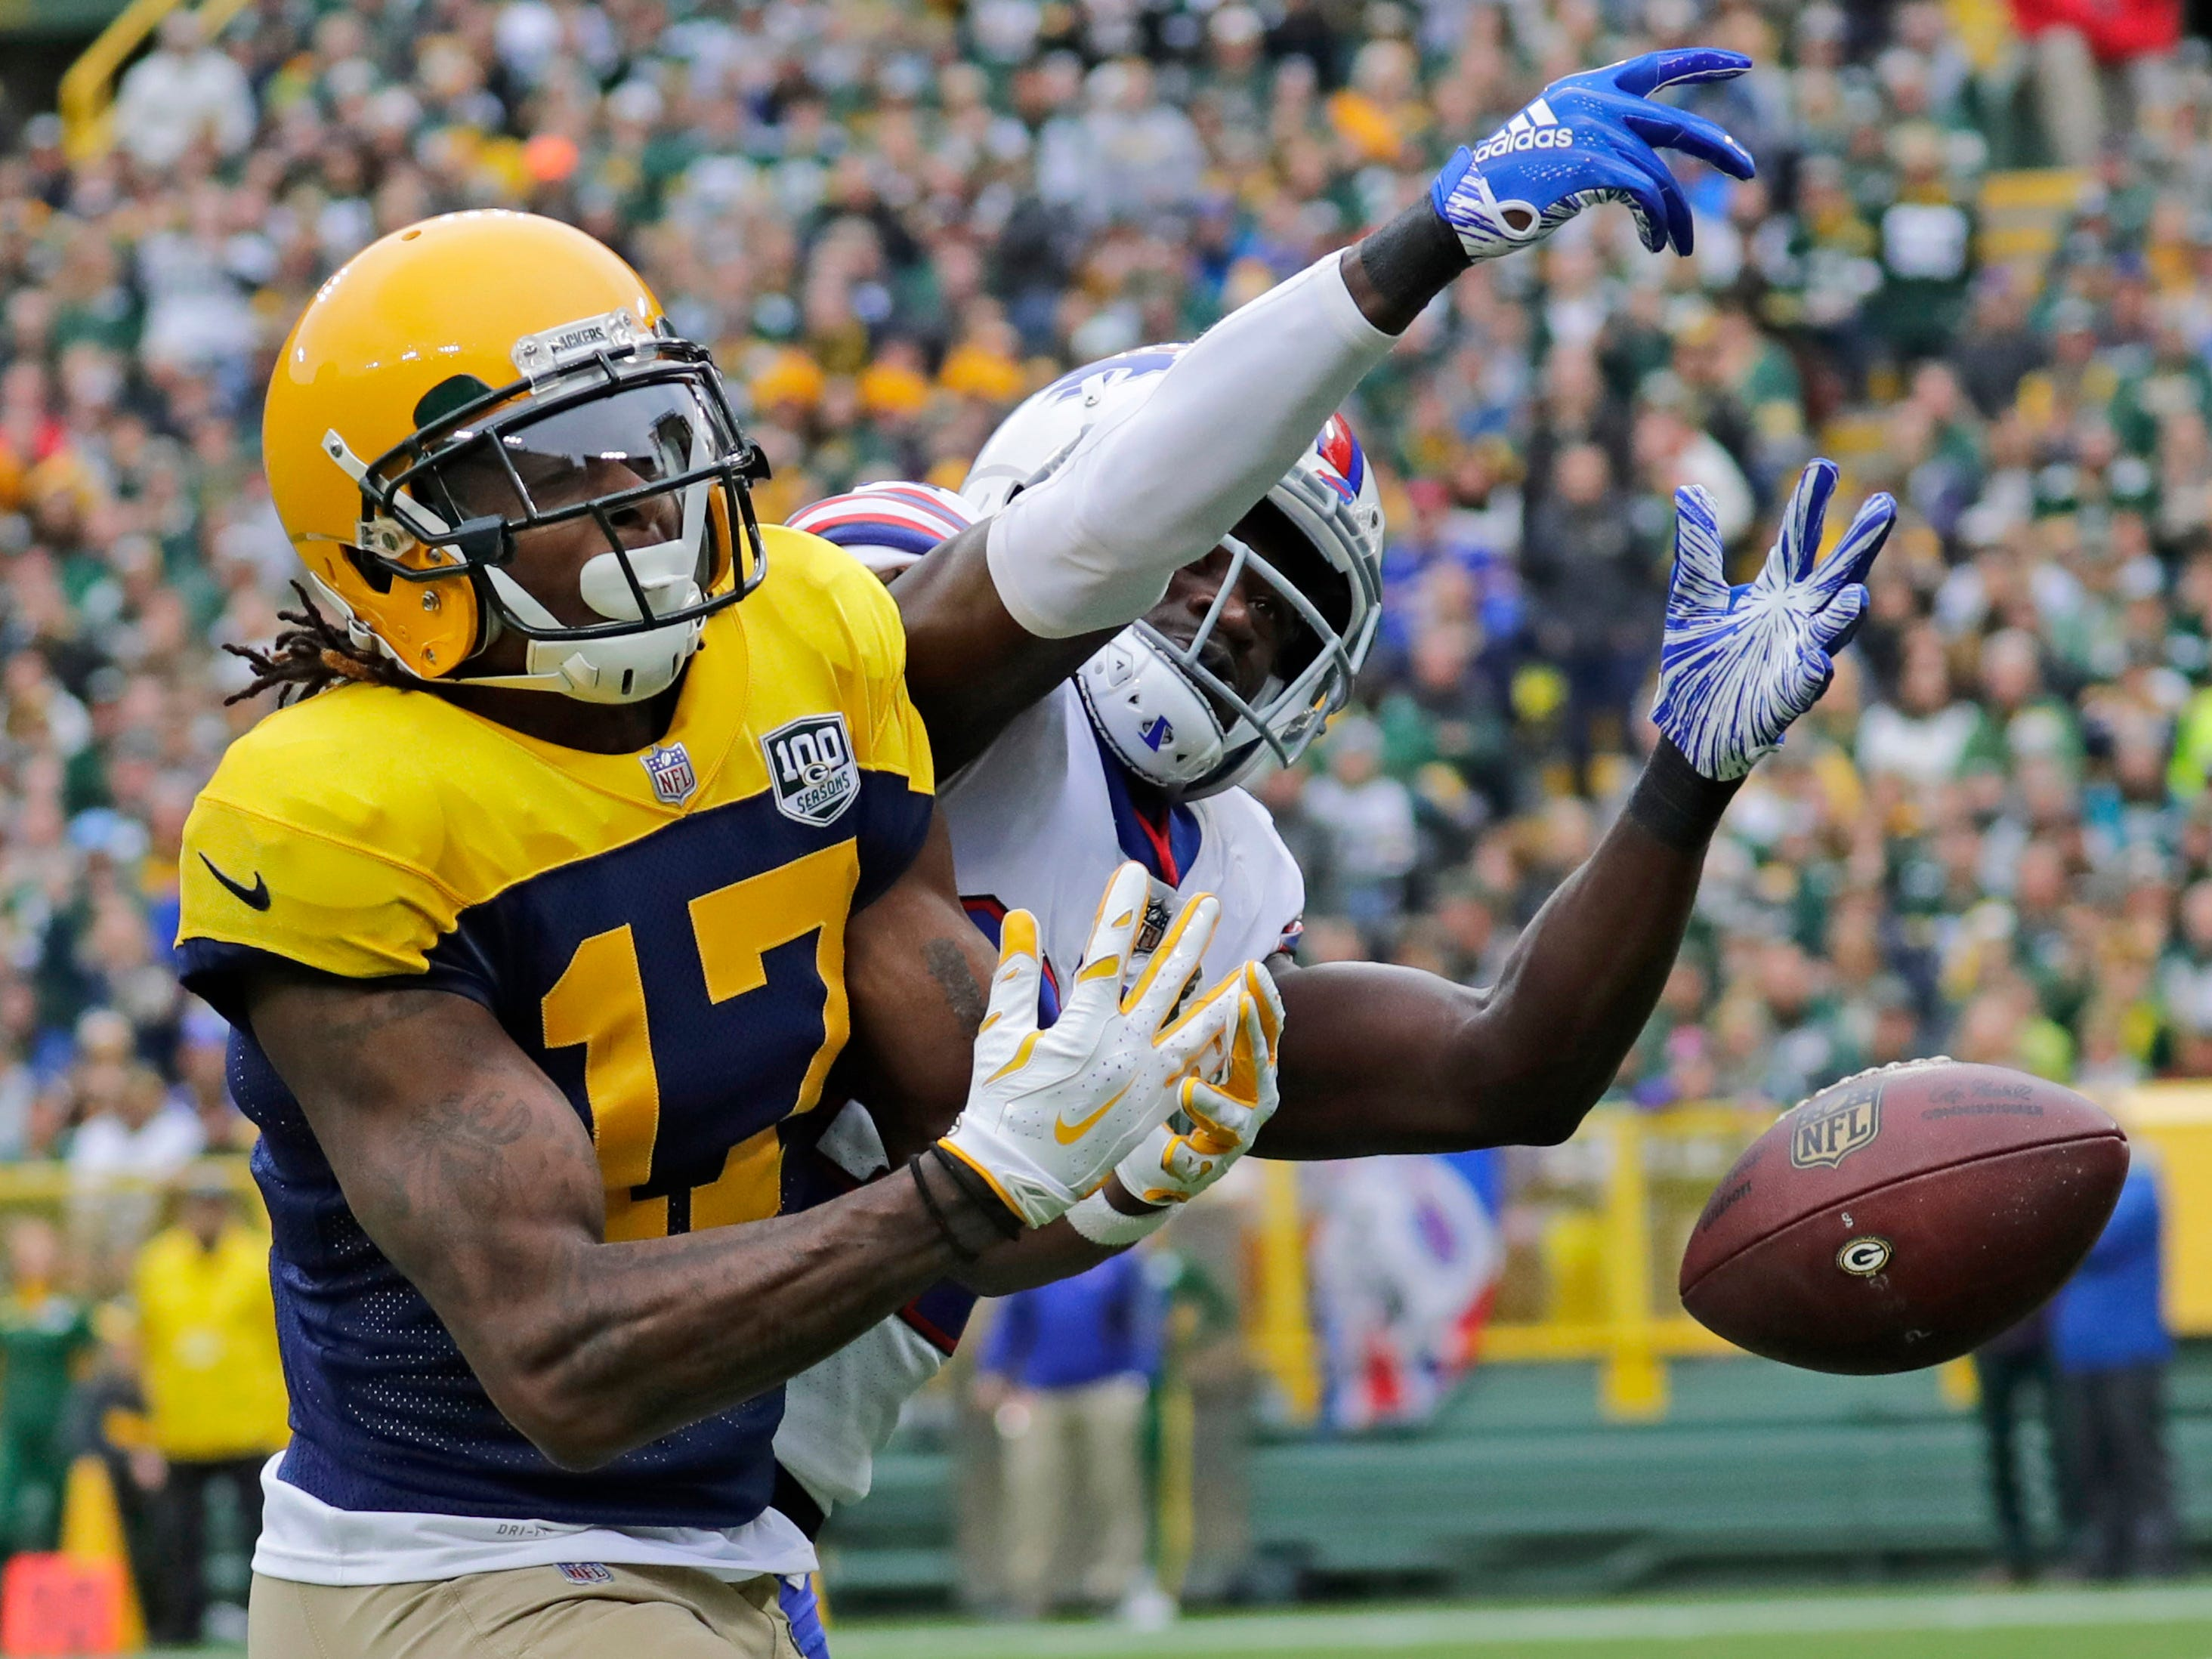 Packers wide receiver Davante Adams (17) drops a pass in the end zone as Bills cornerback Tre'Davious White (27) defends.